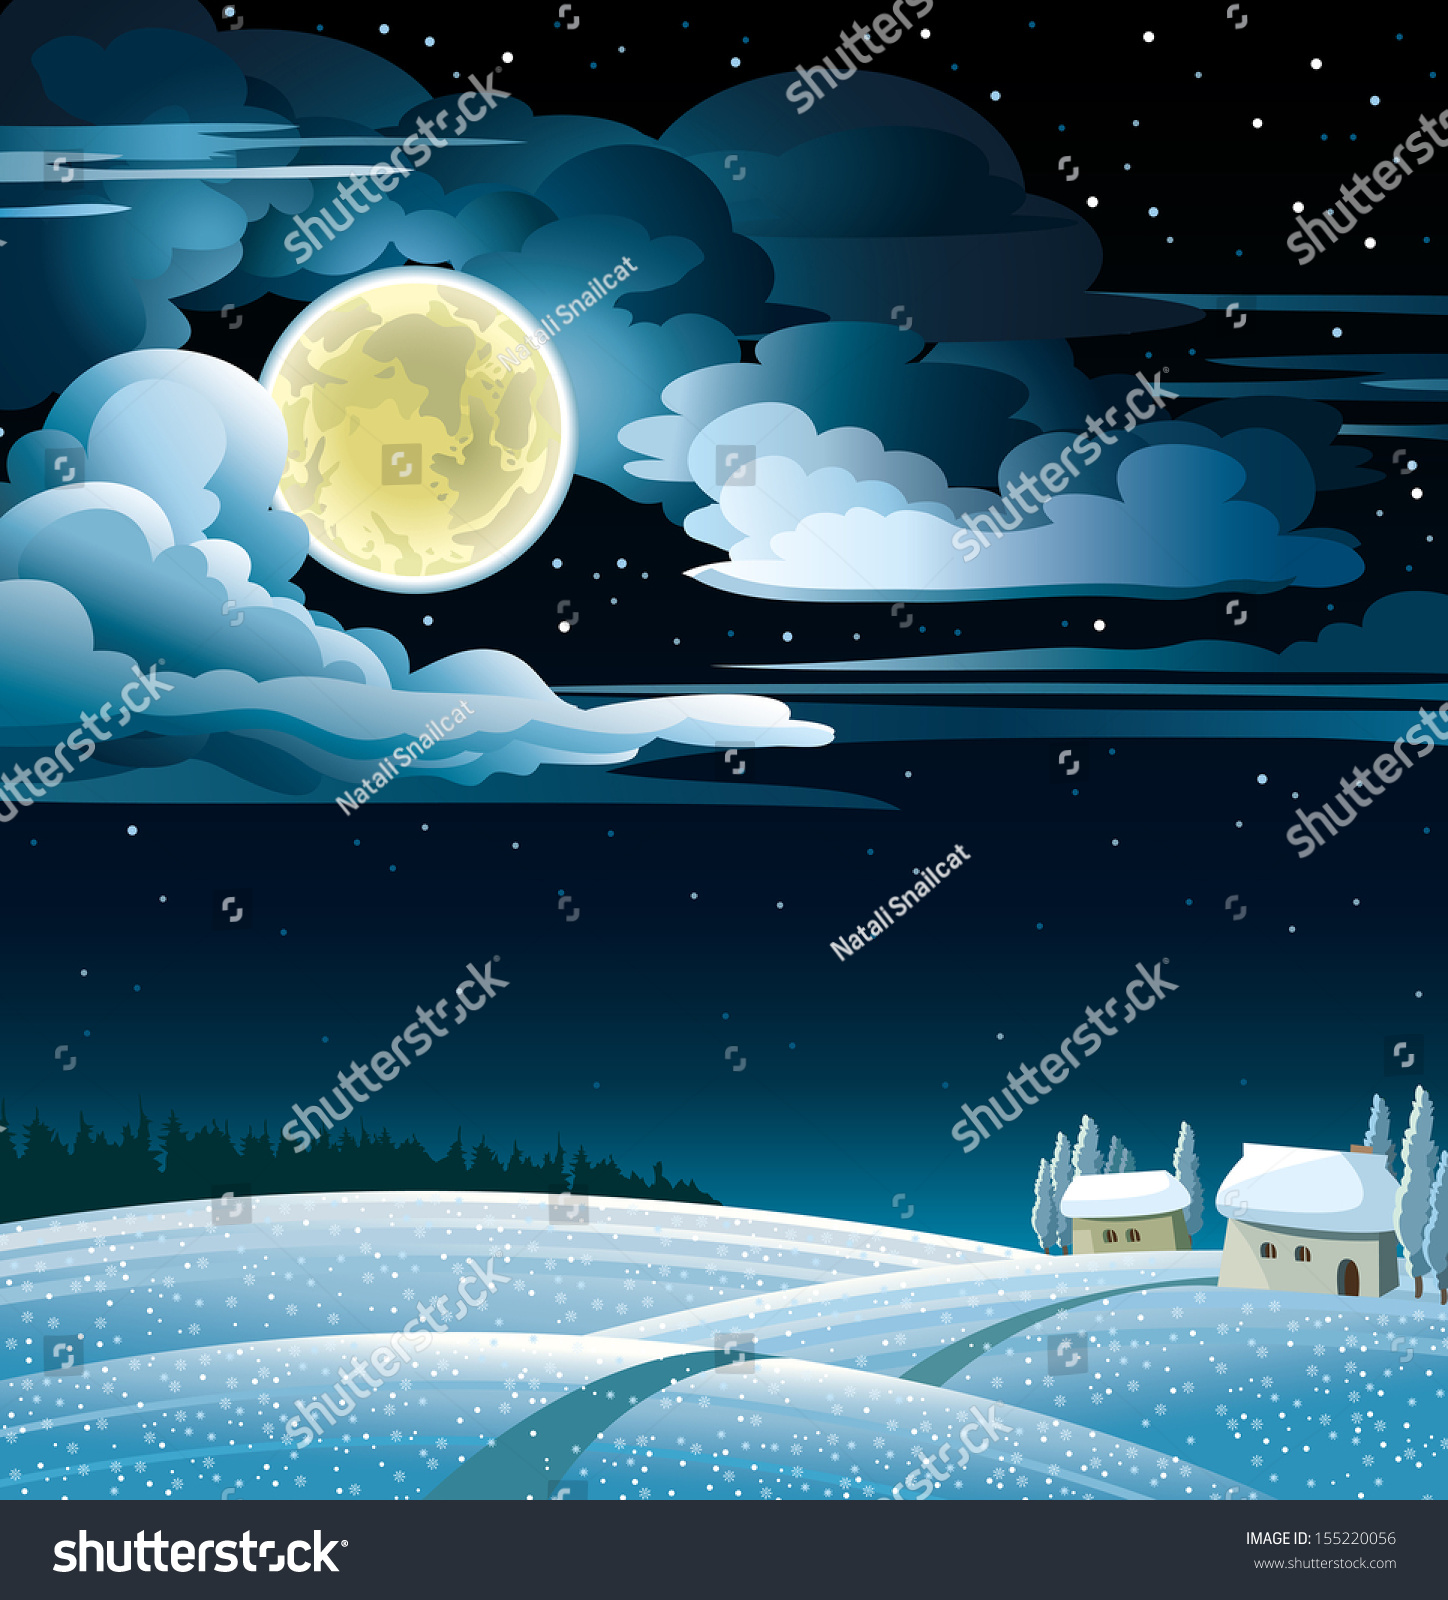 Watercolor Starry Sky Tutorial Stock Vector Winter Night Landscape With Snowy Huts